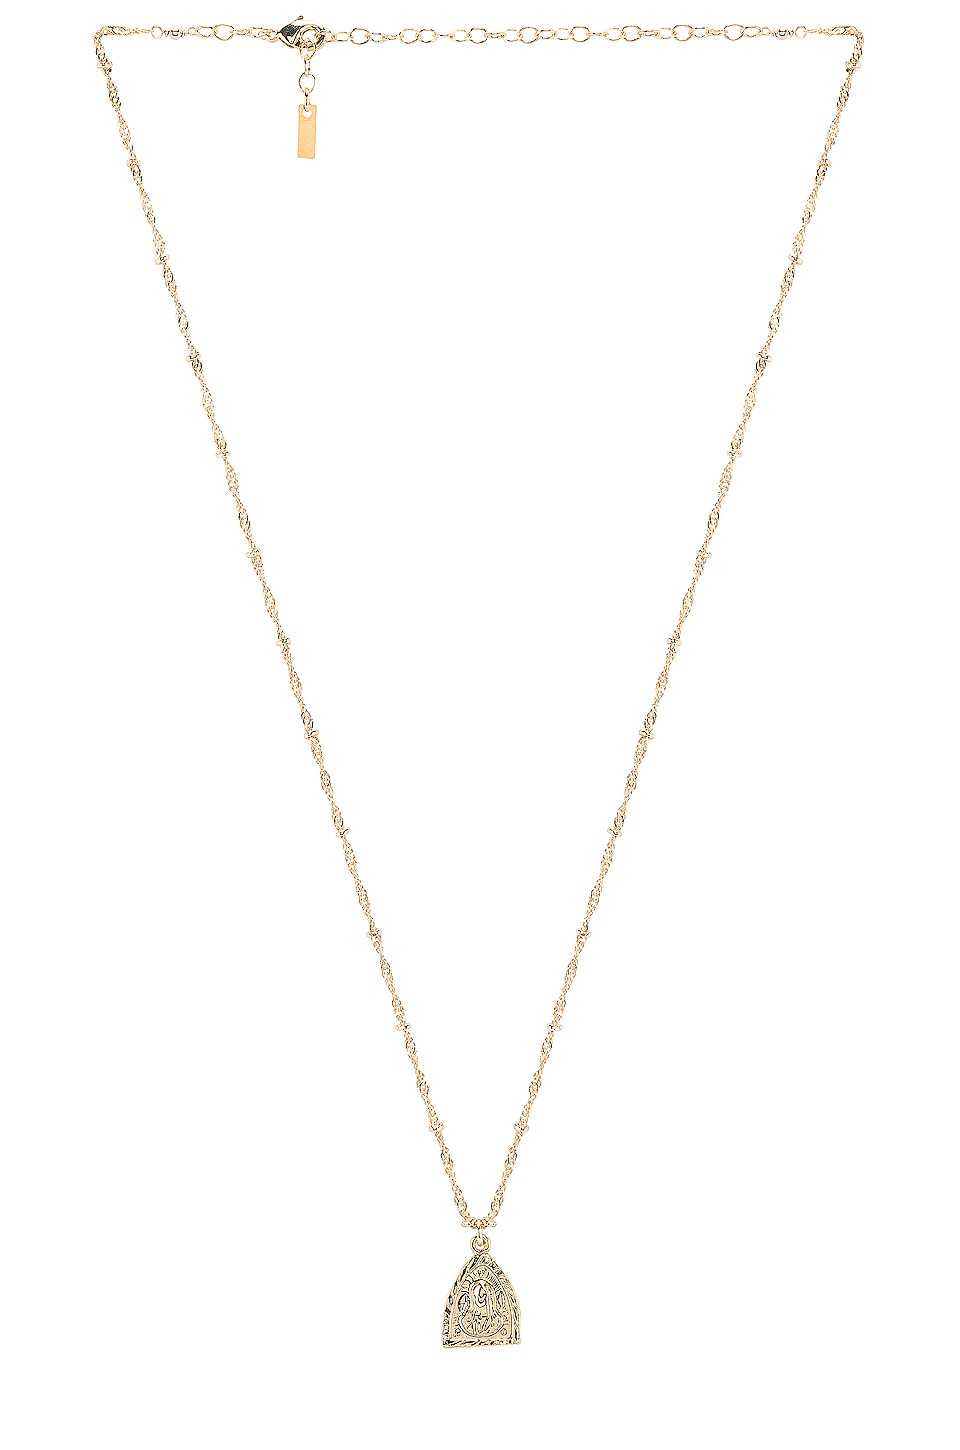 Natalie B Jewelry Madonna Reversible Necklace in Gold